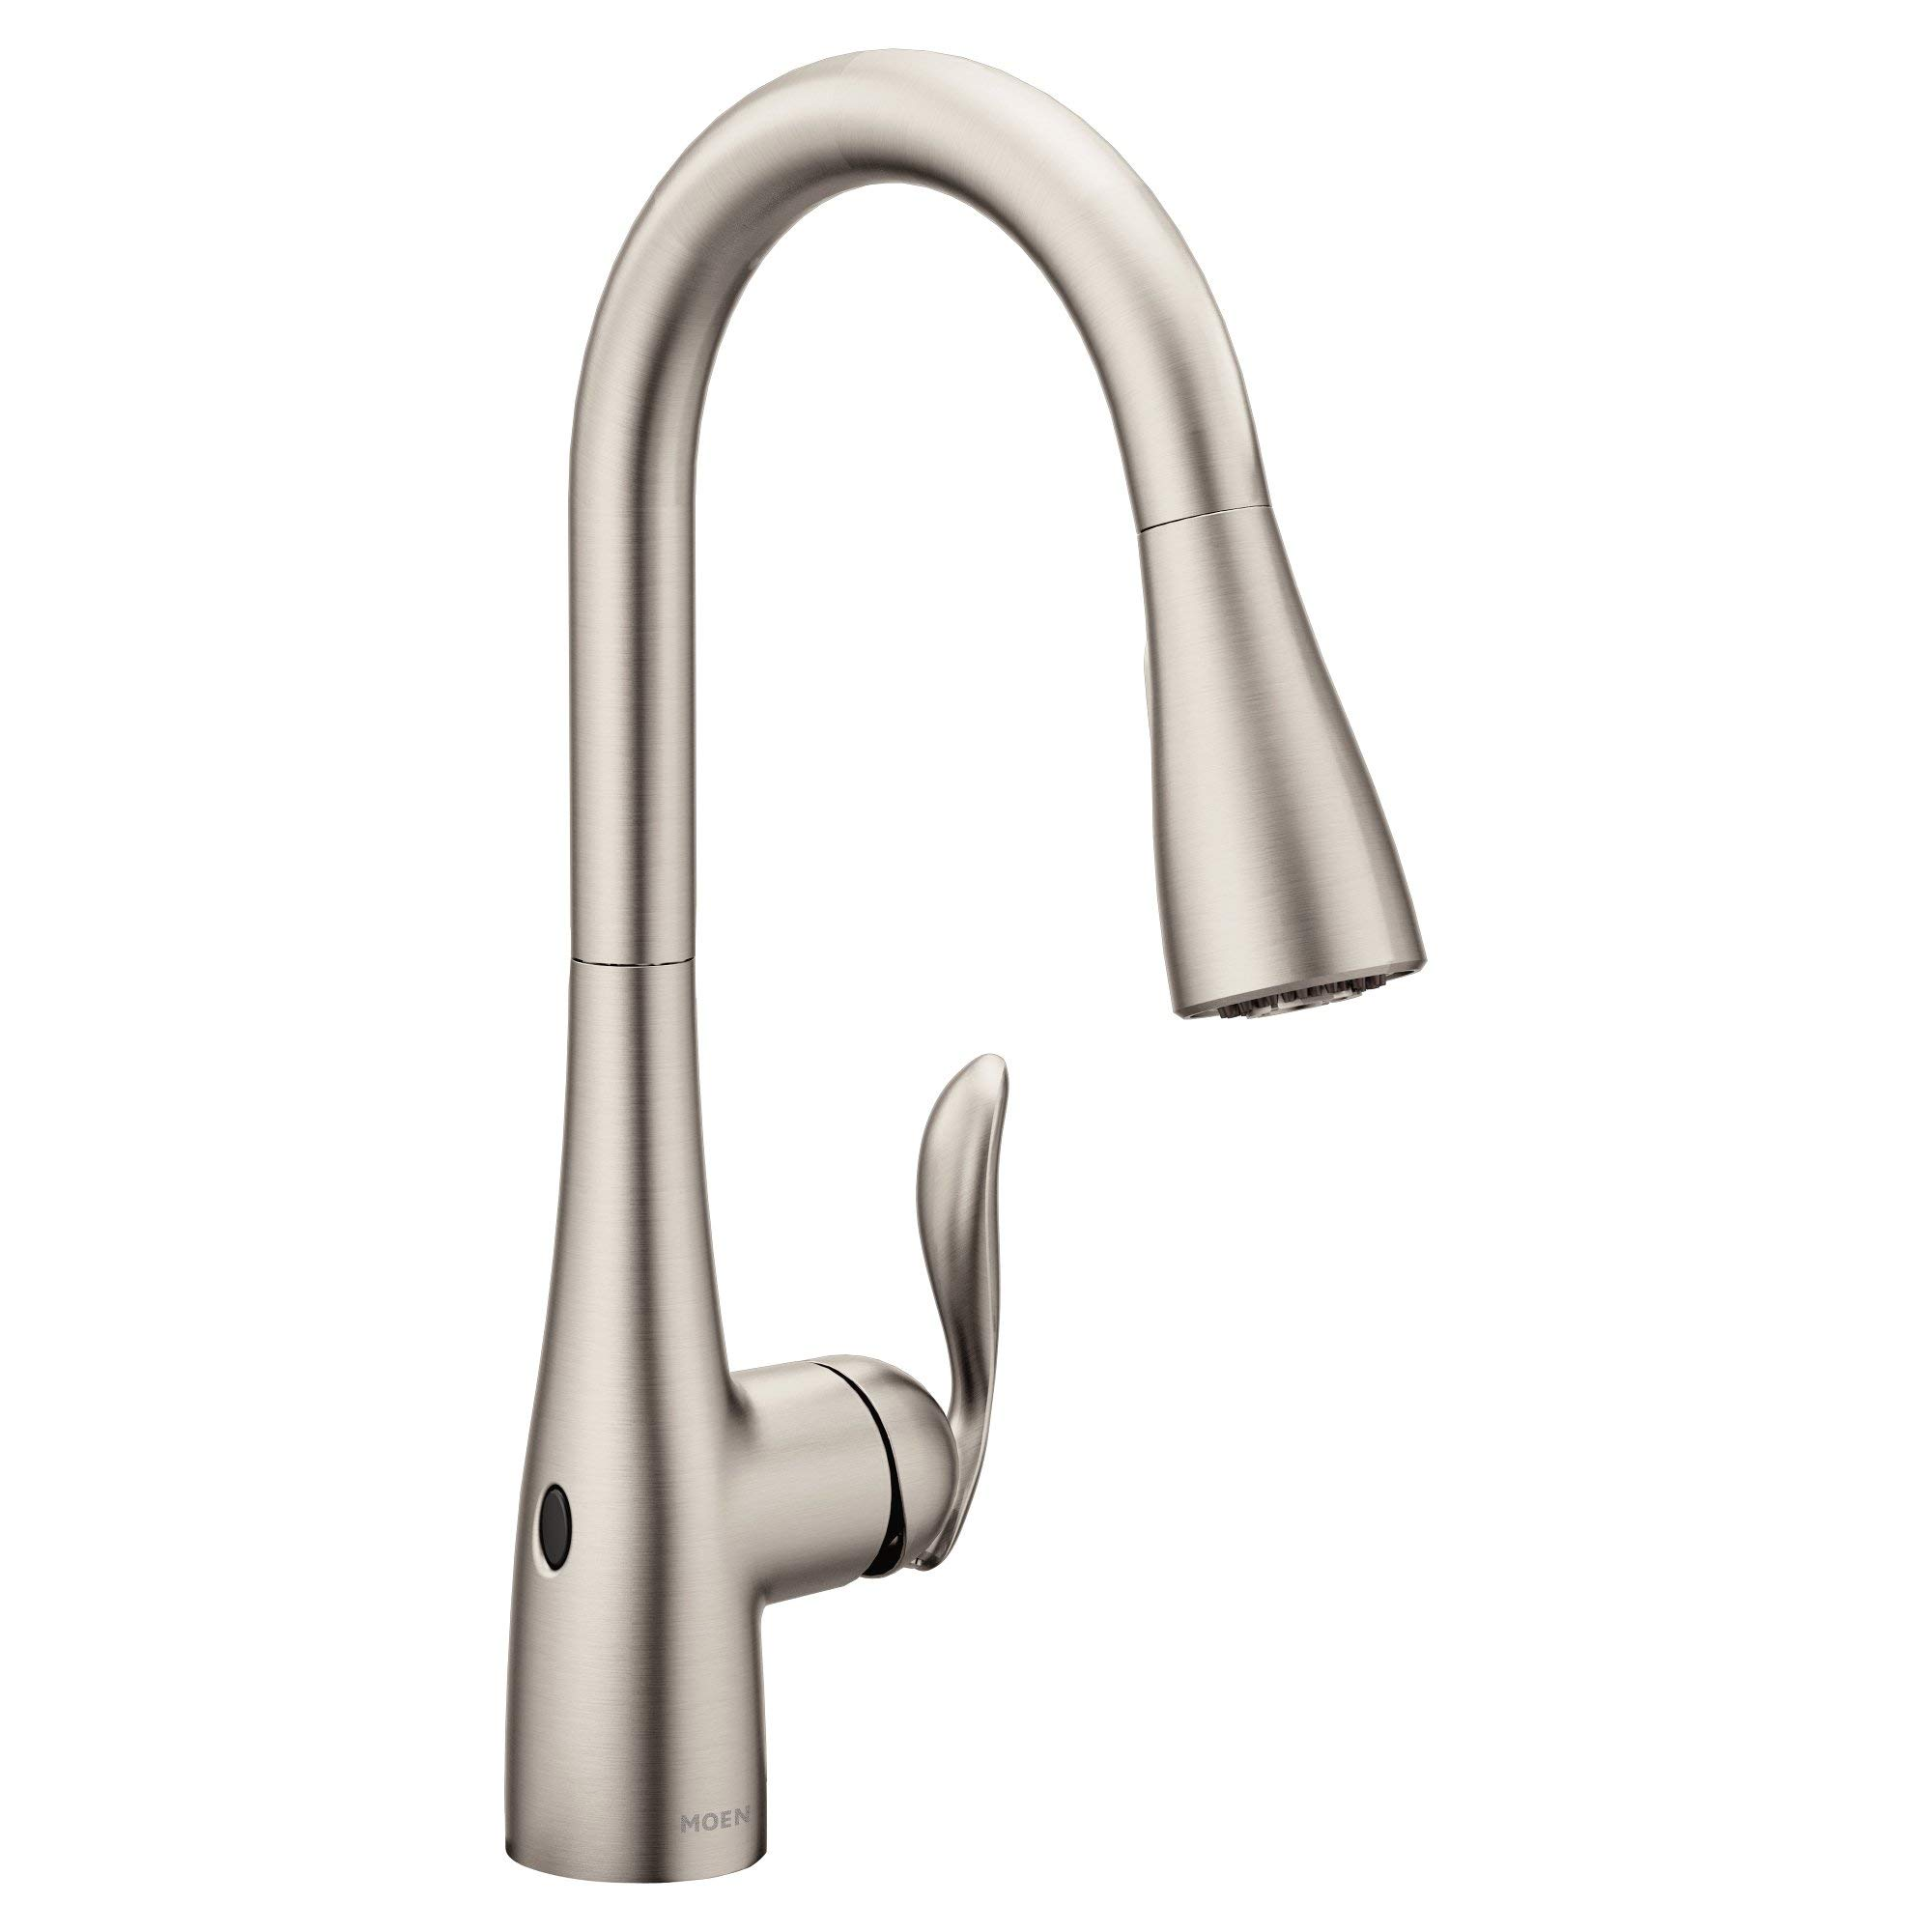 Moen 7594EWSRS Arbor Motionsense Wave Sensor Touchless One-Handle Pulldown Kitchen Faucet Featuring Power Clean , Spot Resist Stainless (Renewed) by Moen